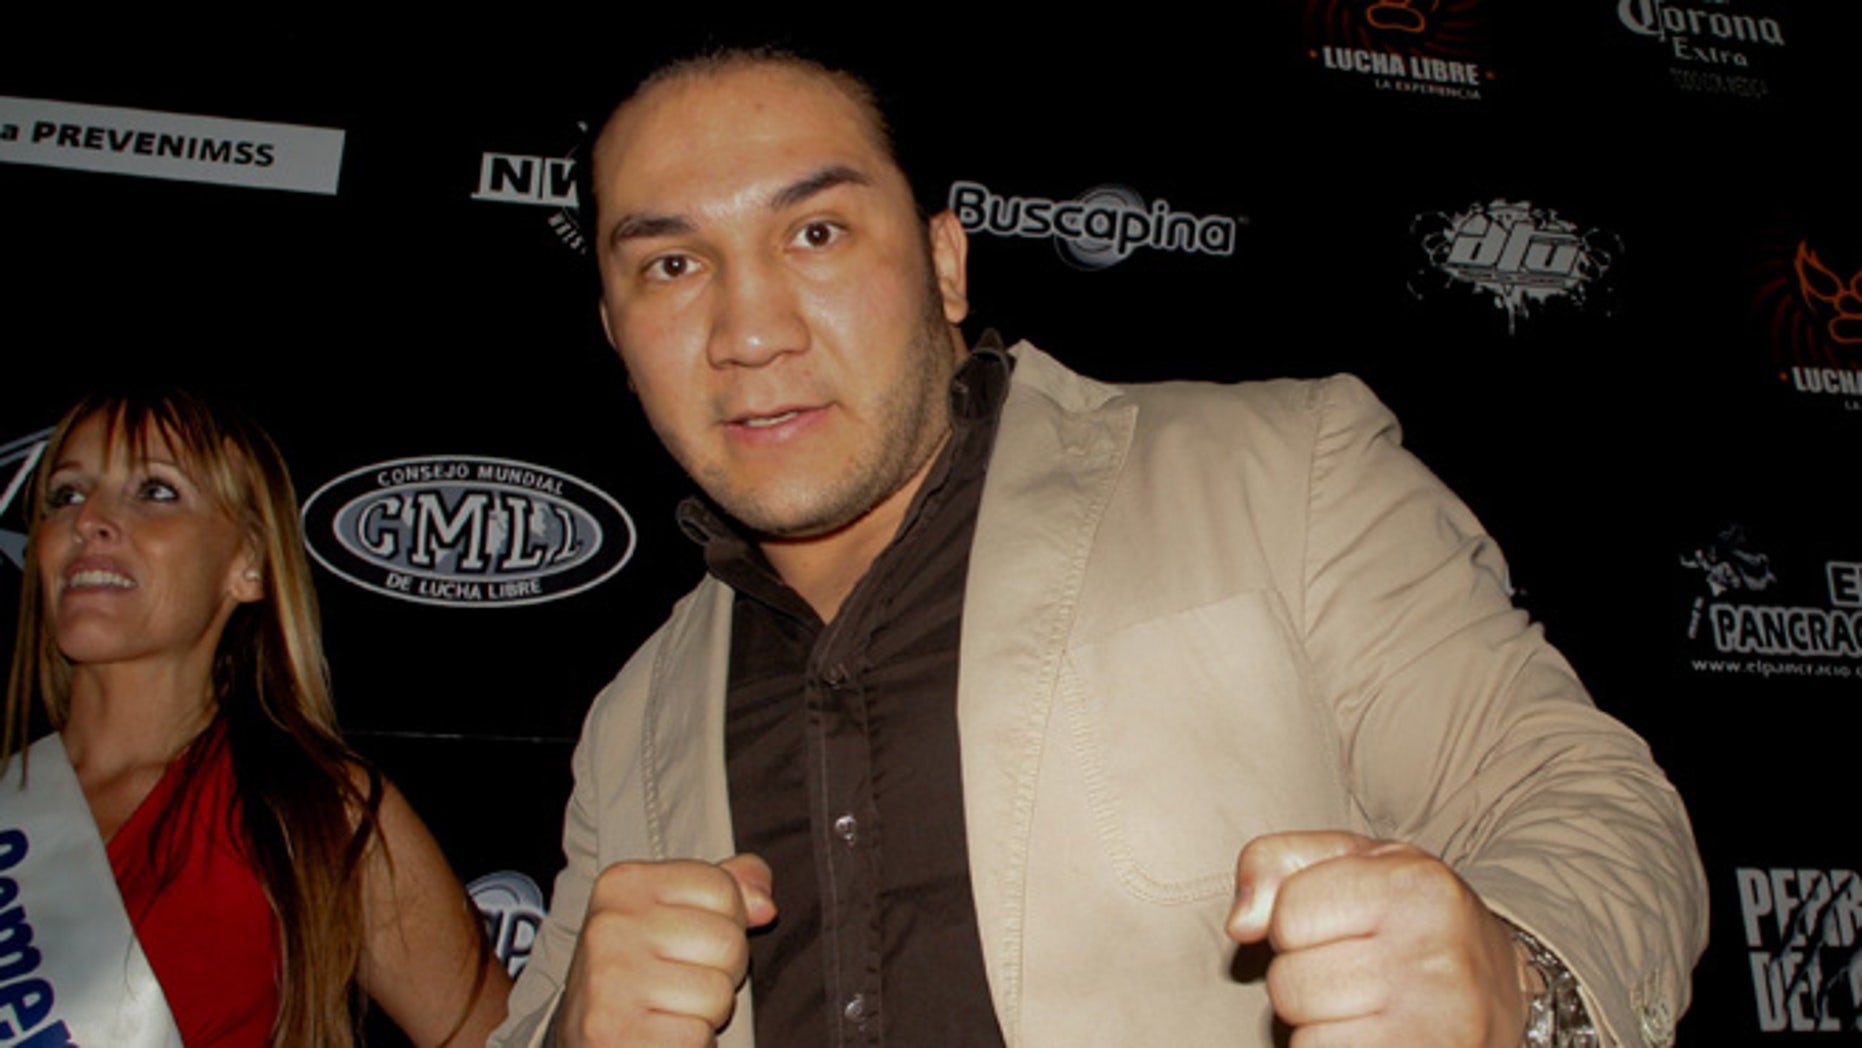 In this May 27, 2010 photo, Mexican wrestler Pedro Aguayo Ramirez, known as Hijo del Perro Aguayo, poses for photographers at the start of a news conference in Mexico City. Ramirez, the son of a wrestling legend in the country, died early Saturday March 21, 2015, from a hit suffered in the ring in Tijuana, the Baja California state prosecutor's office said. (AP Photo/Enrique Ordonez-CUARTOSCURO.COM) MEXICO OUT - NO PUBLICAR EN MEXICO - MANDATORY CREDIT - CREDITO OBLIGATORIO